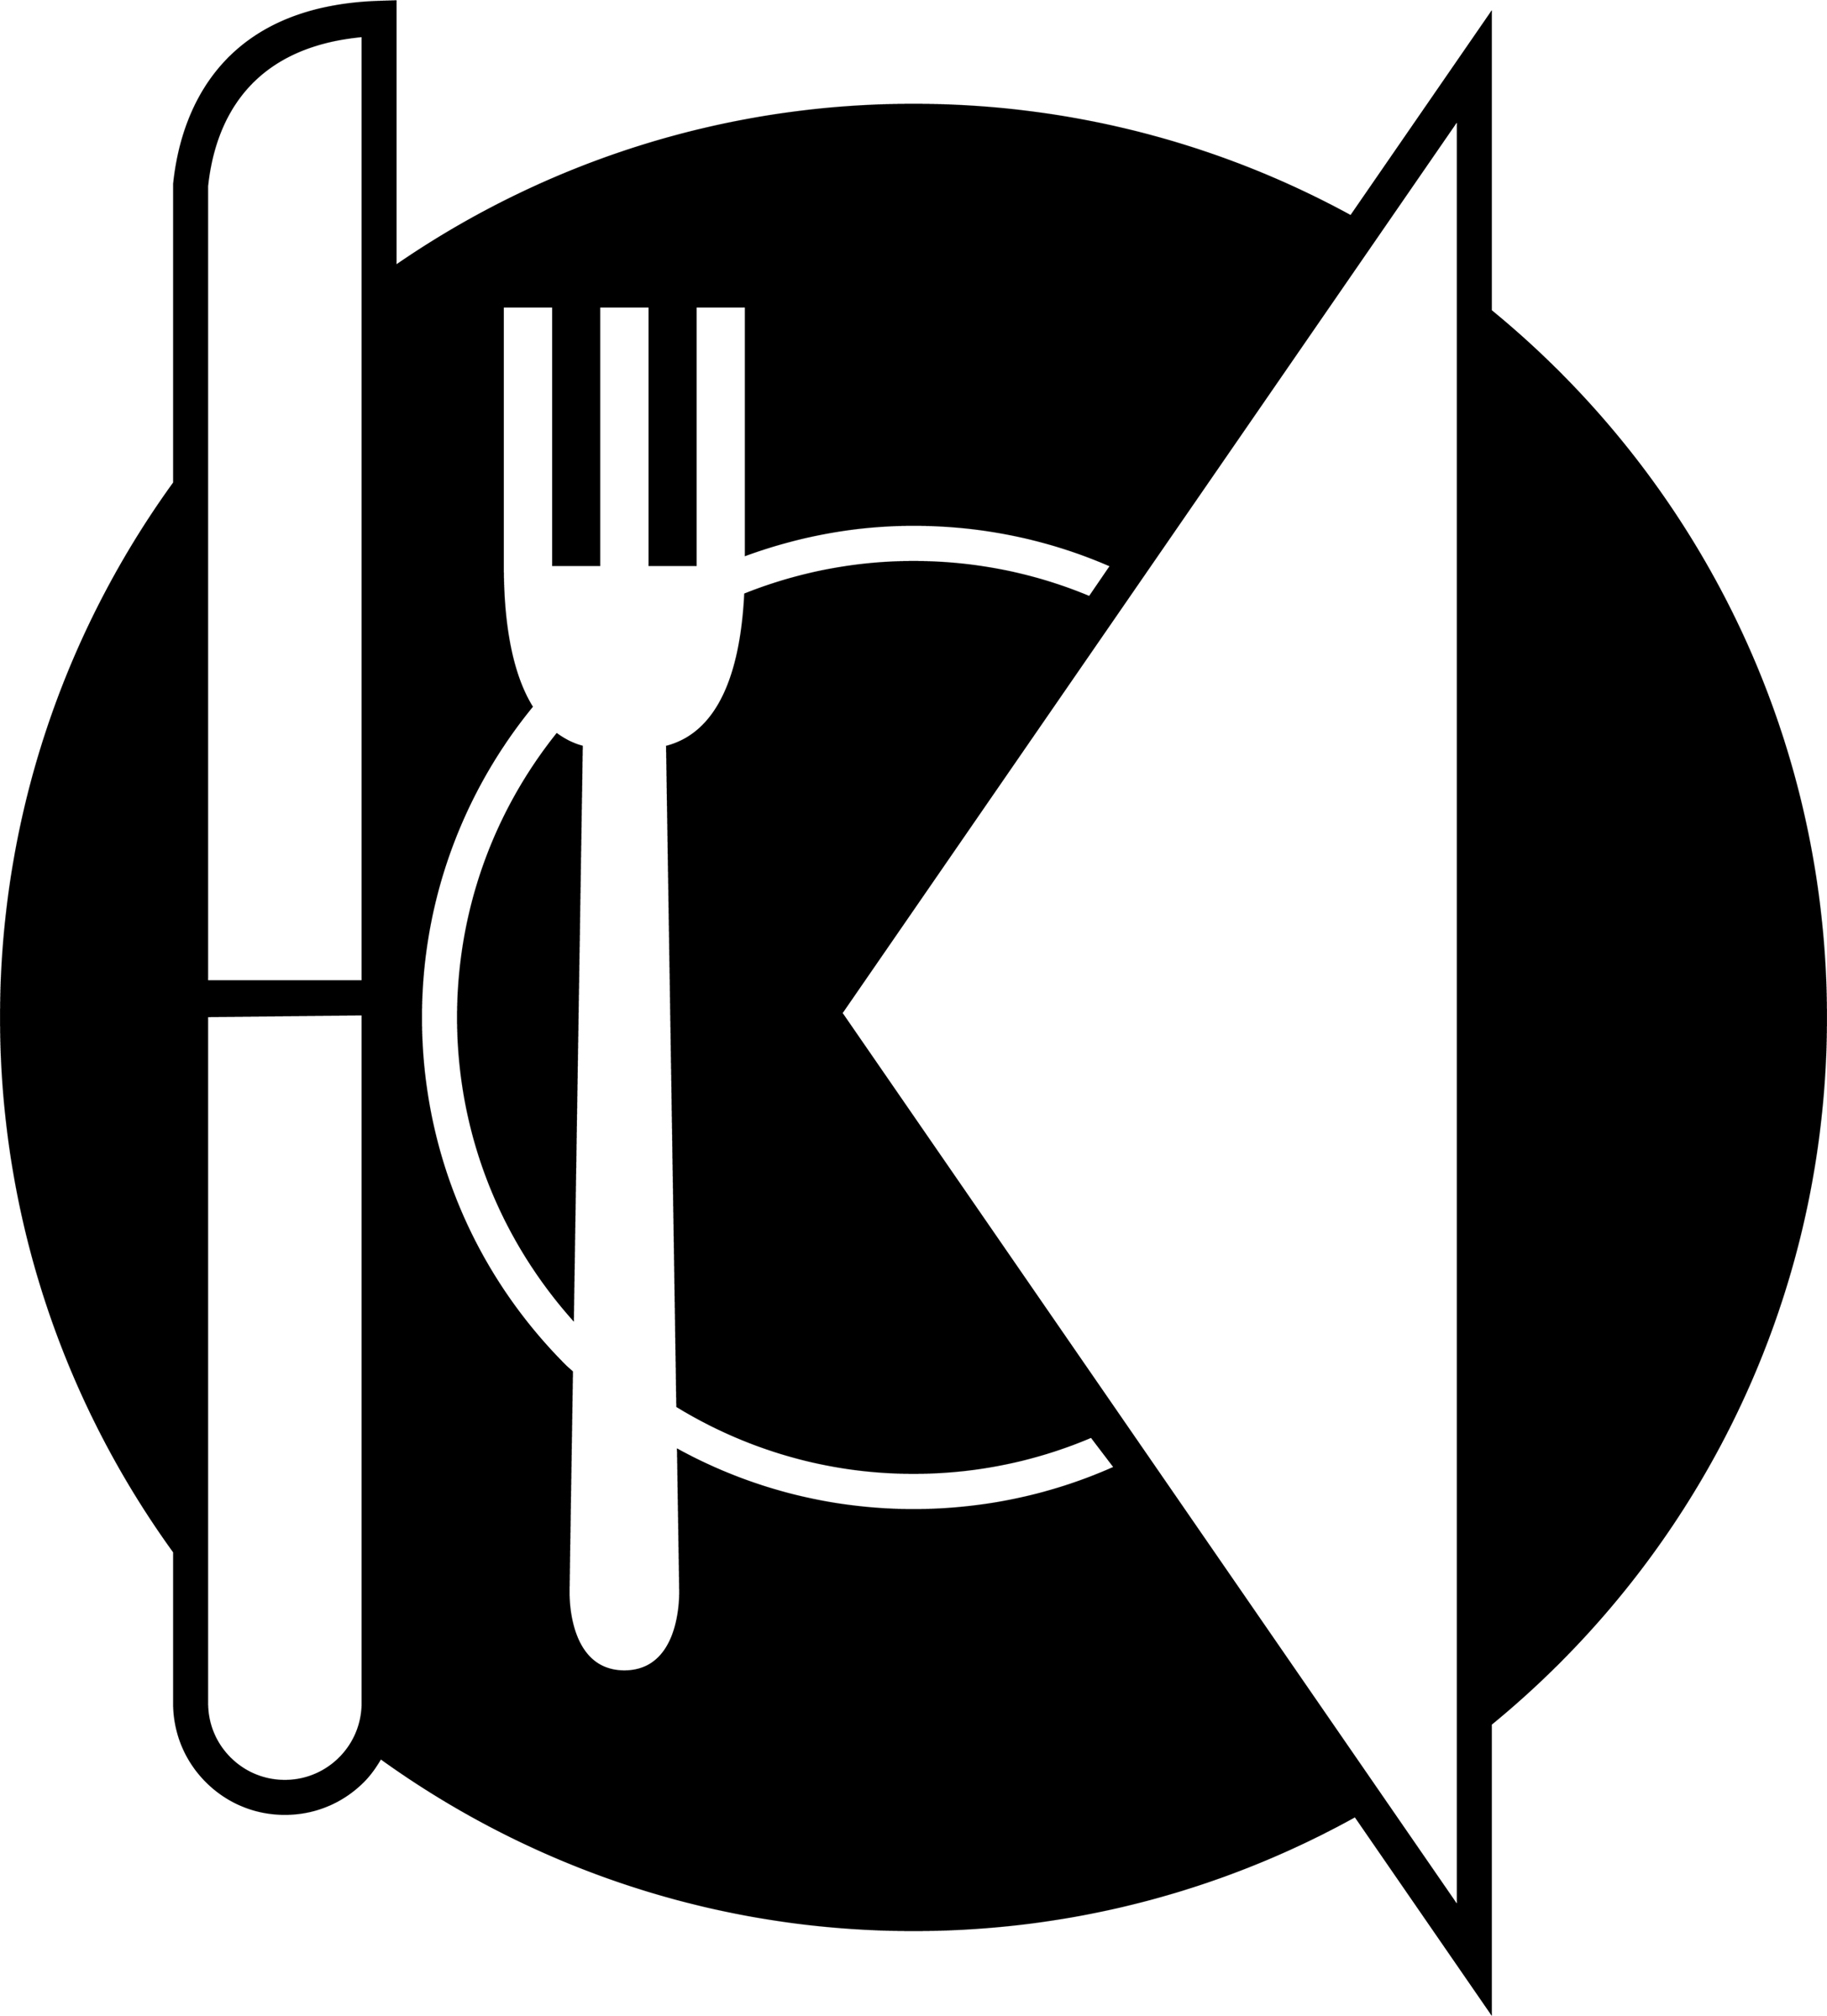 Catering clipart black and white. Dinner panda free images